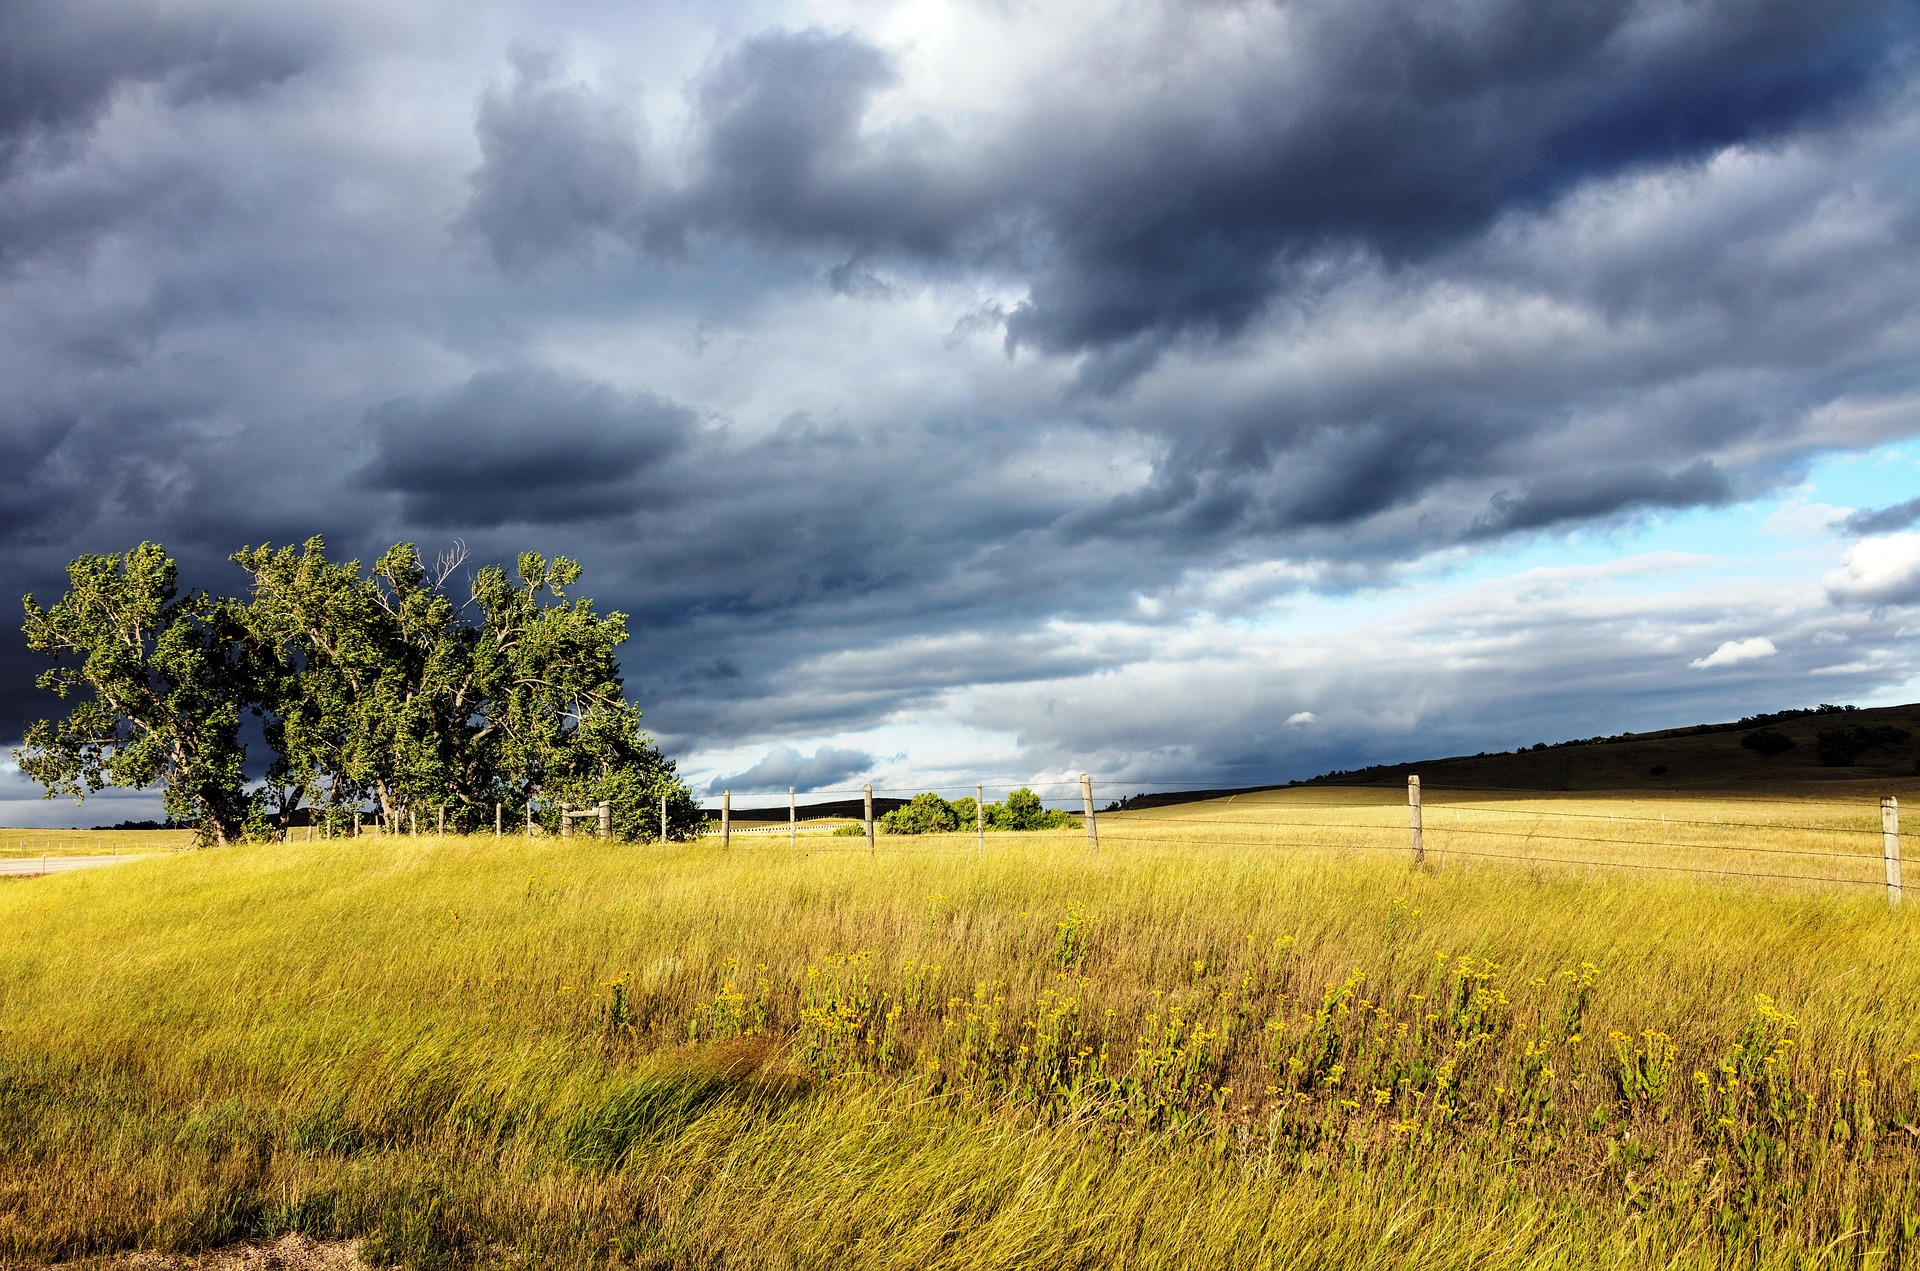 Wyoming, Agricultural, Agriculture, Cloudy, Field, HQ Photo